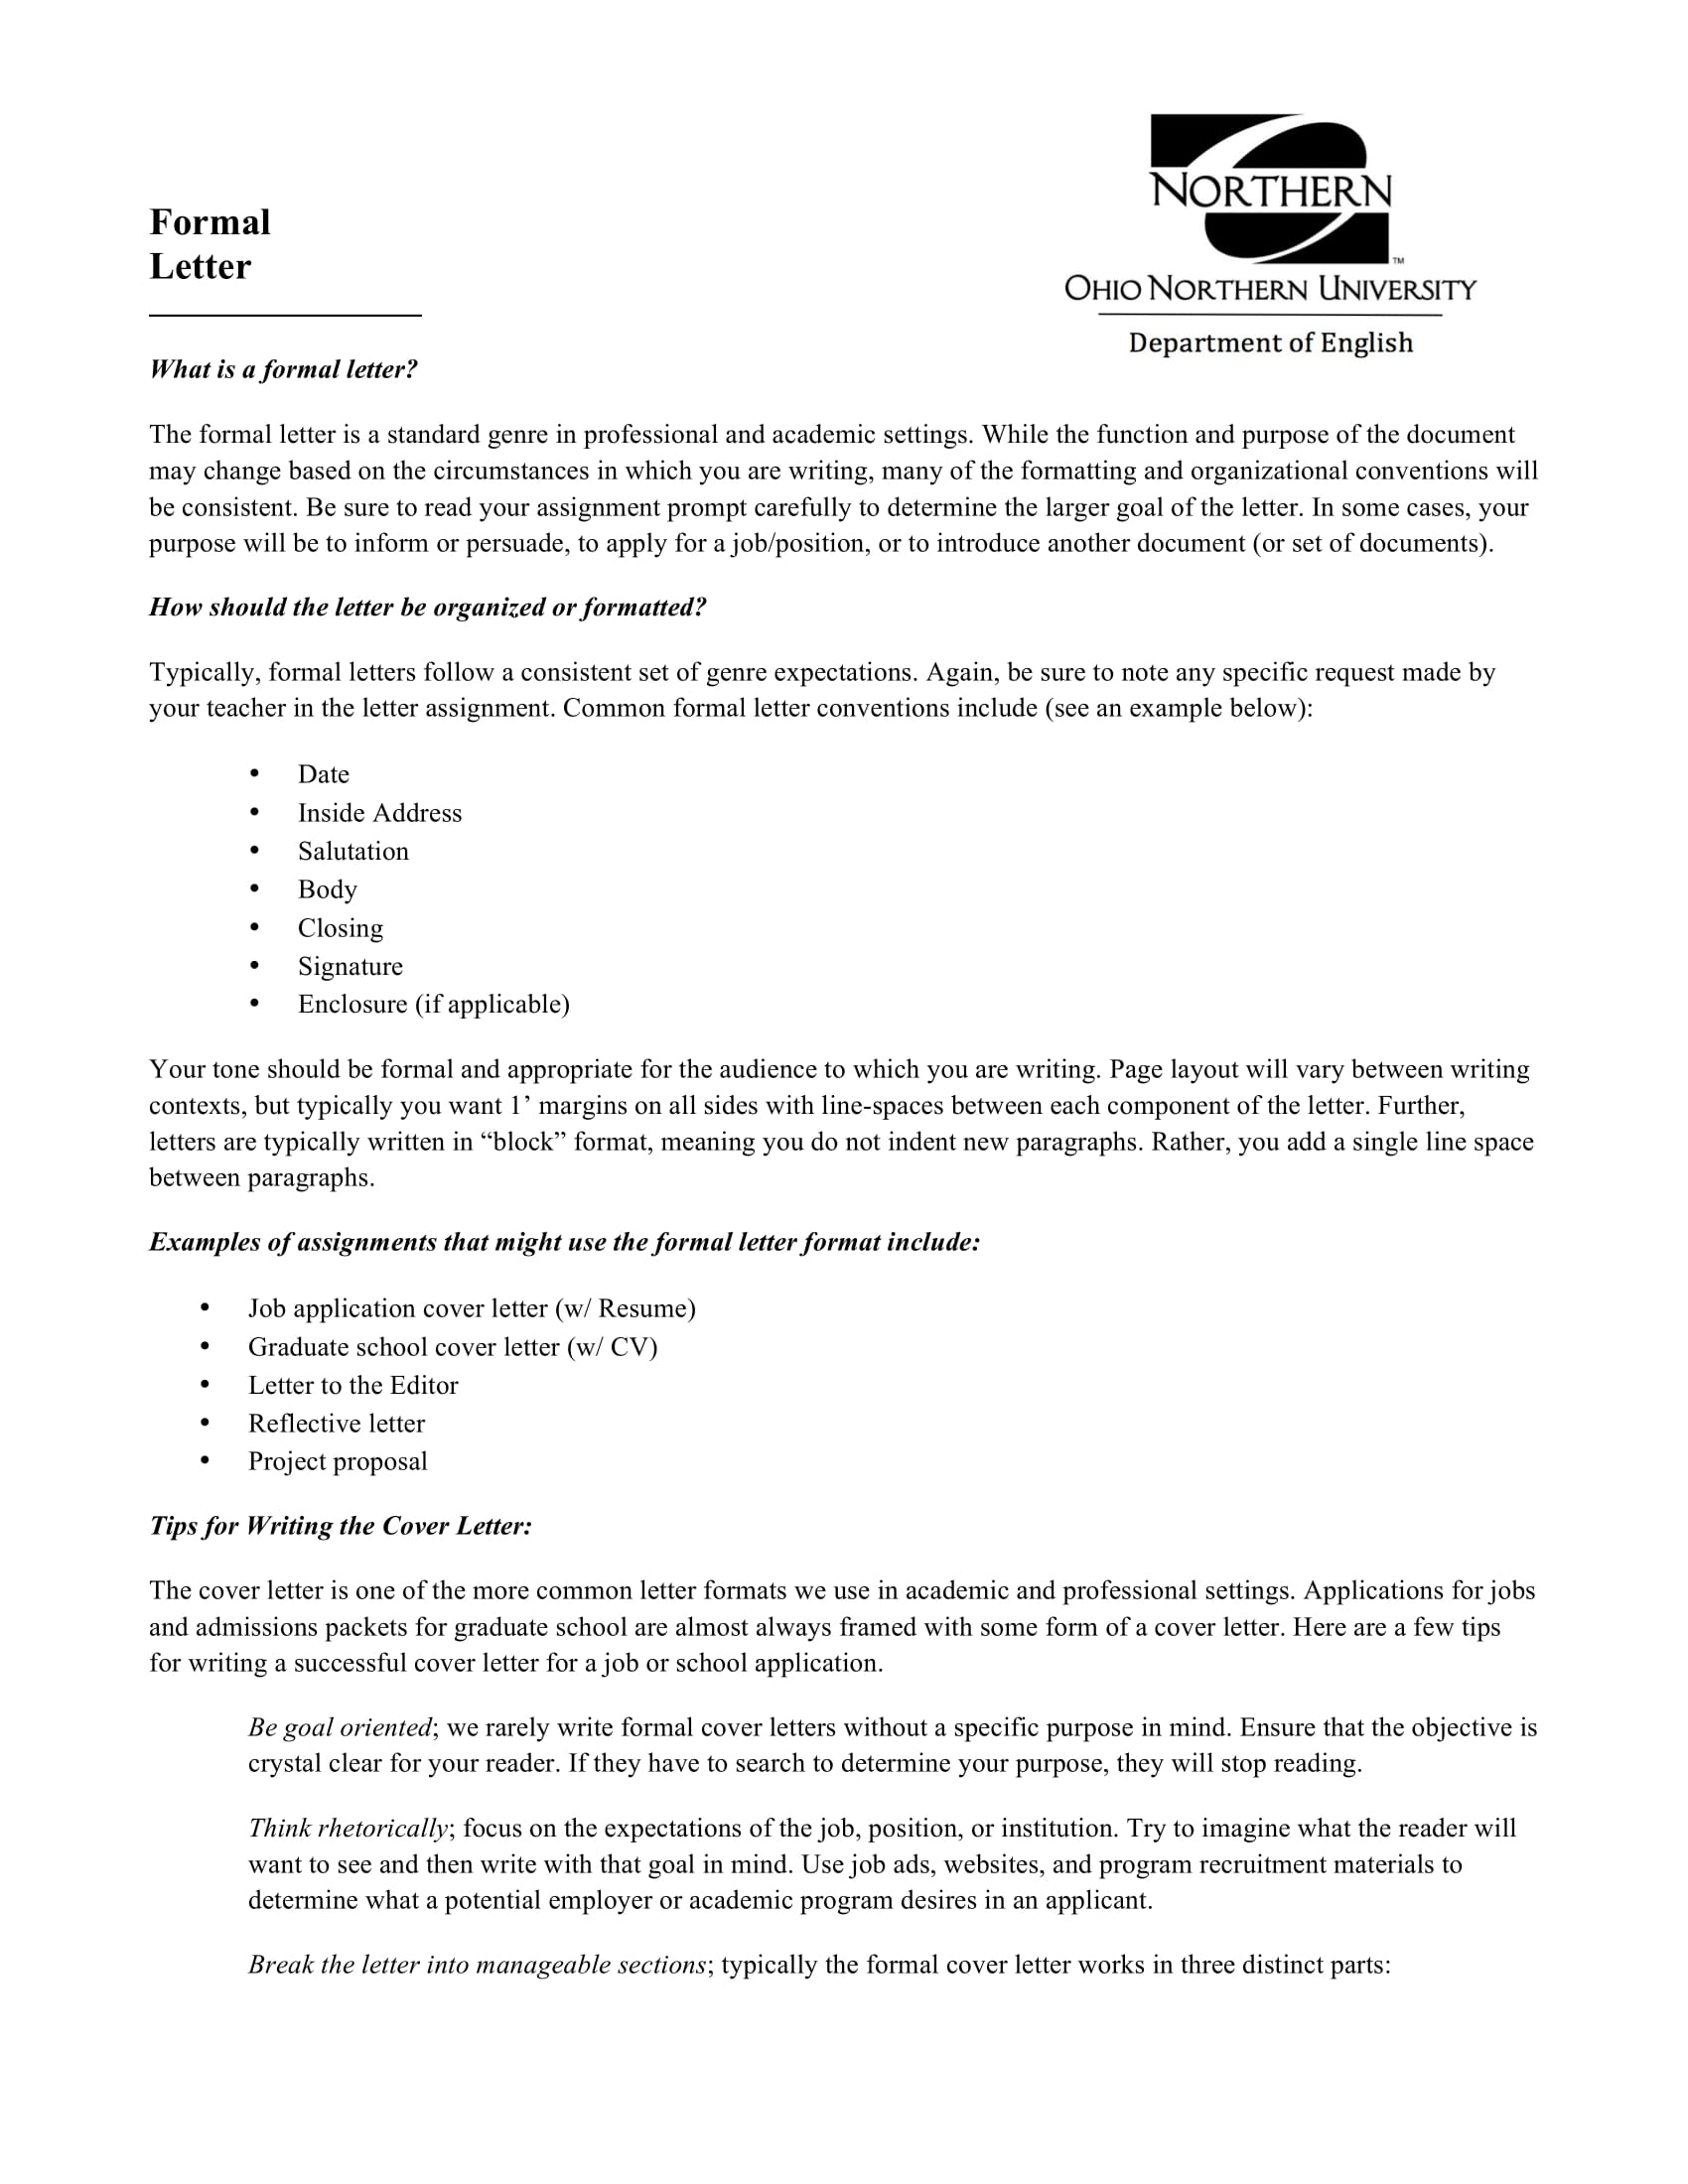 8 business formal letter examples pdf basic formal letter example altavistaventures Choice Image